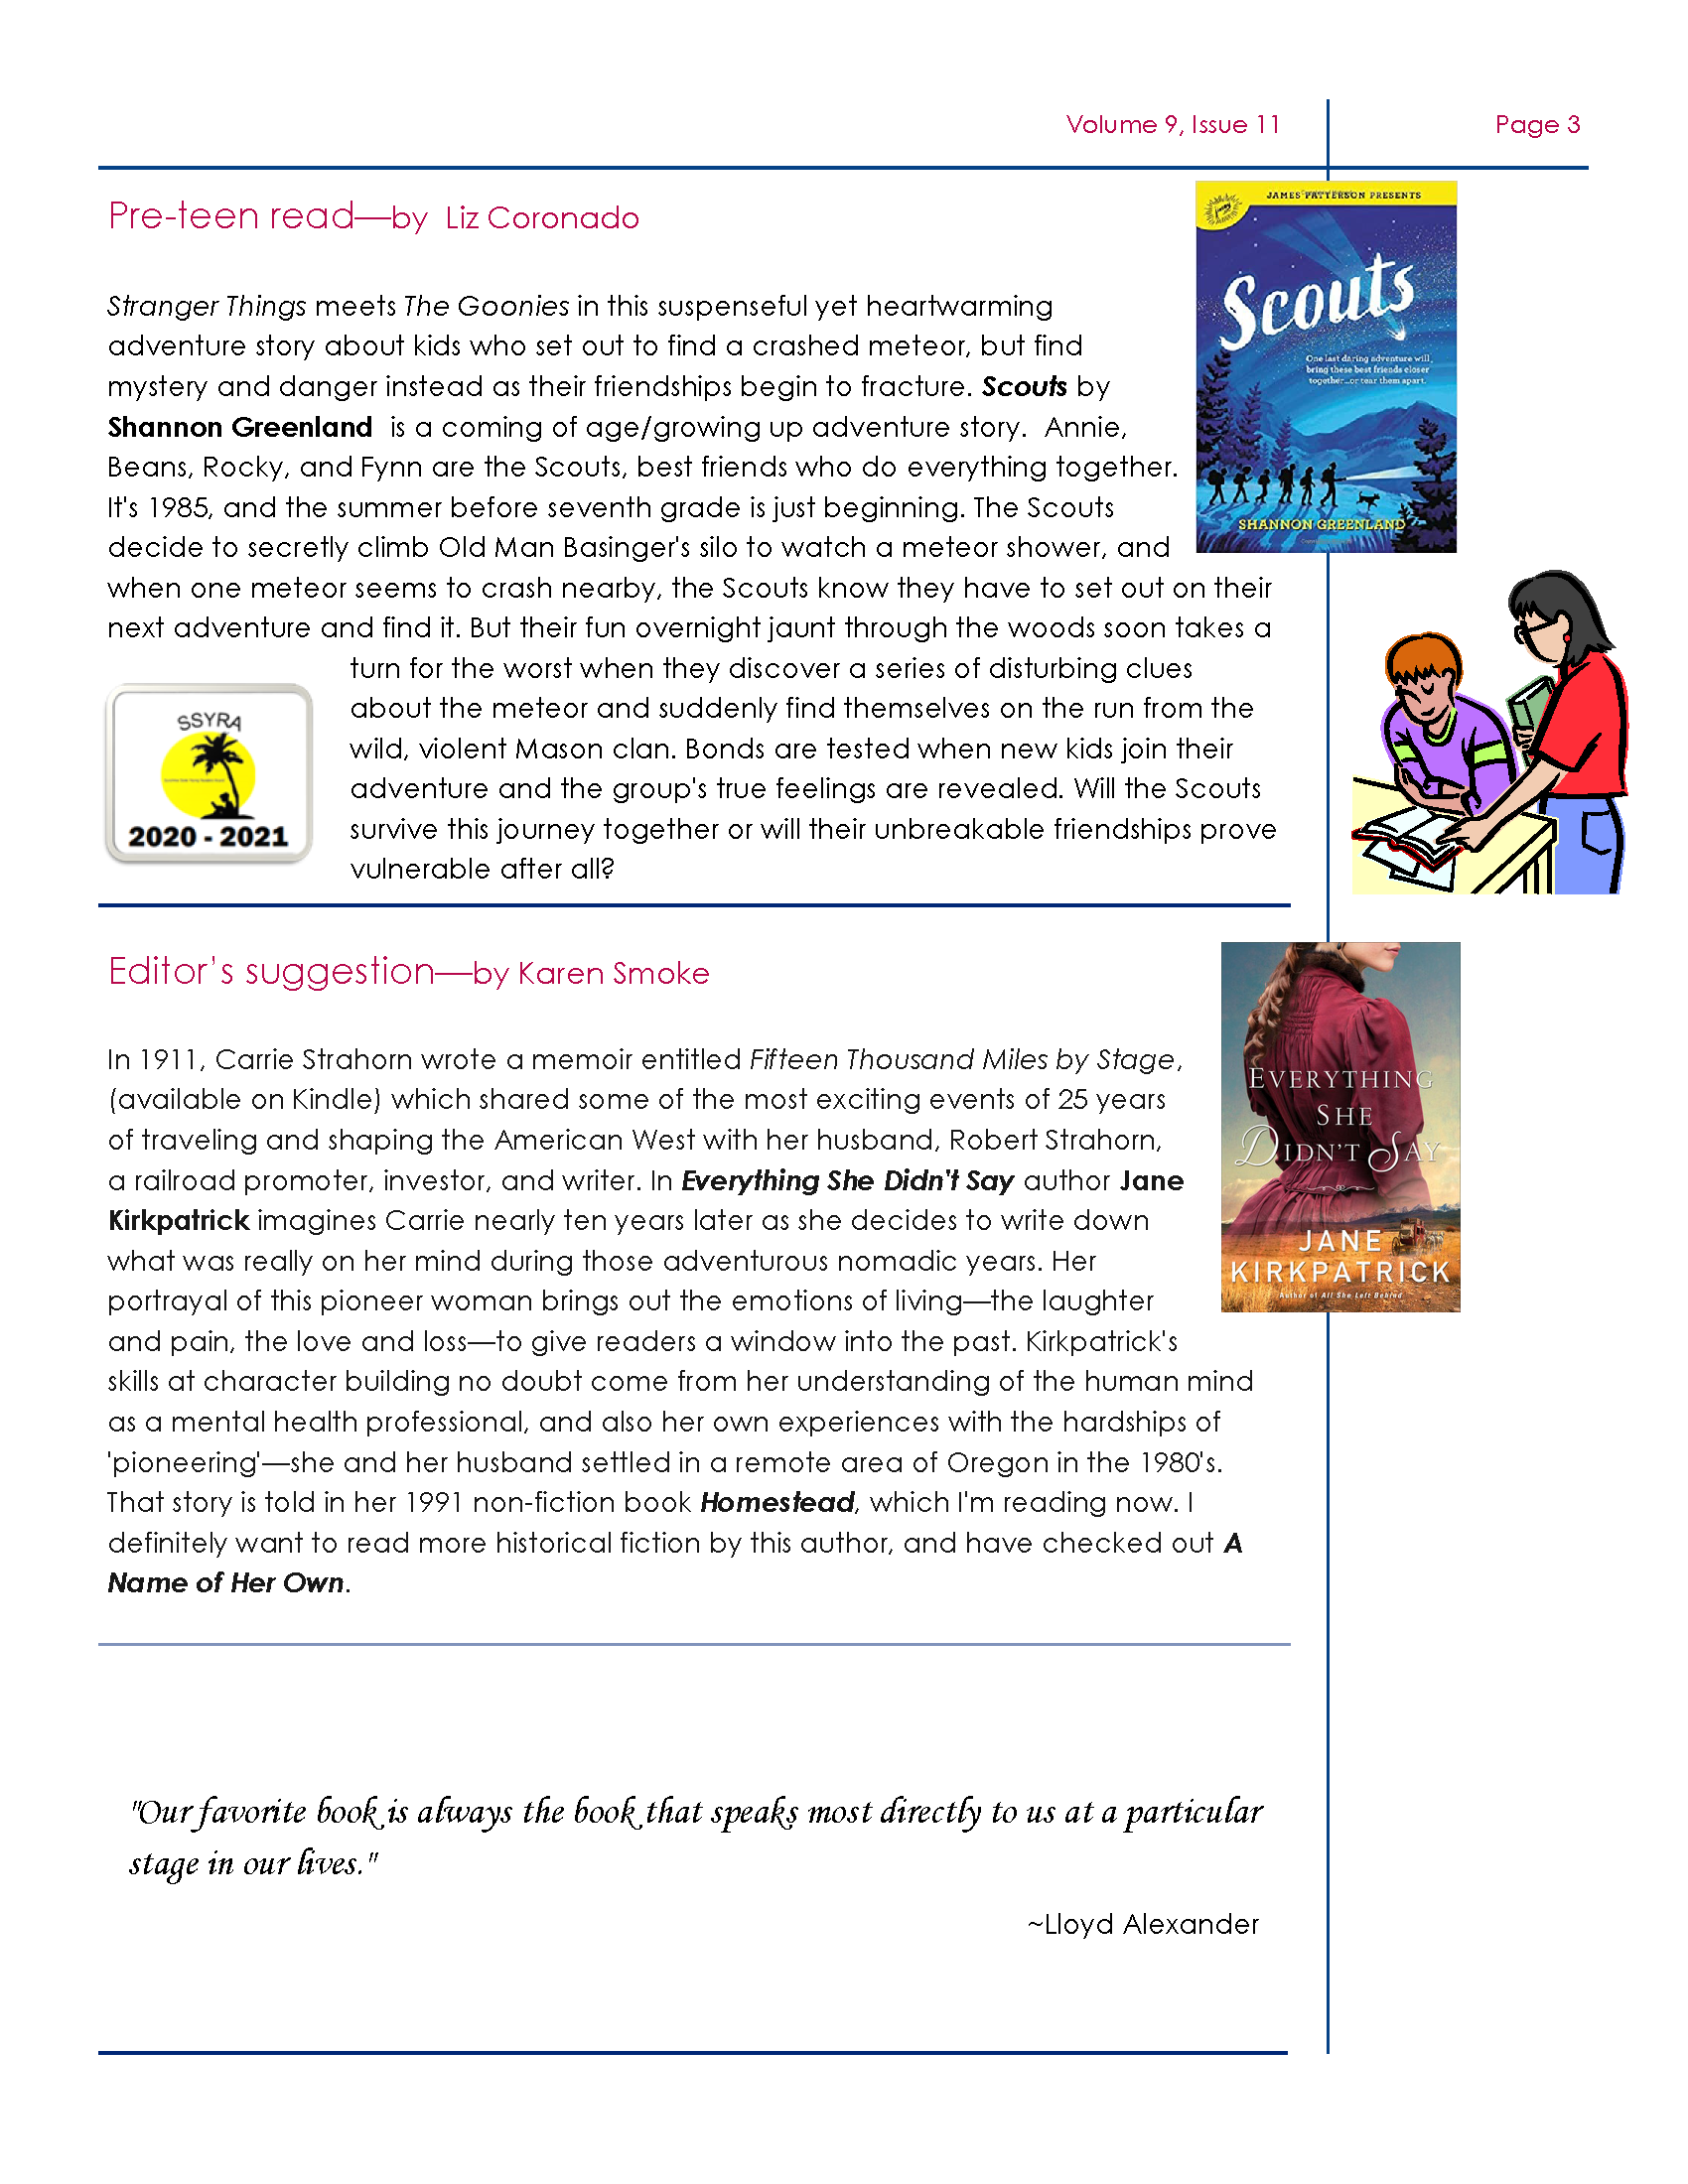 Page three of DeSoto November Newsletter, available for PDF download